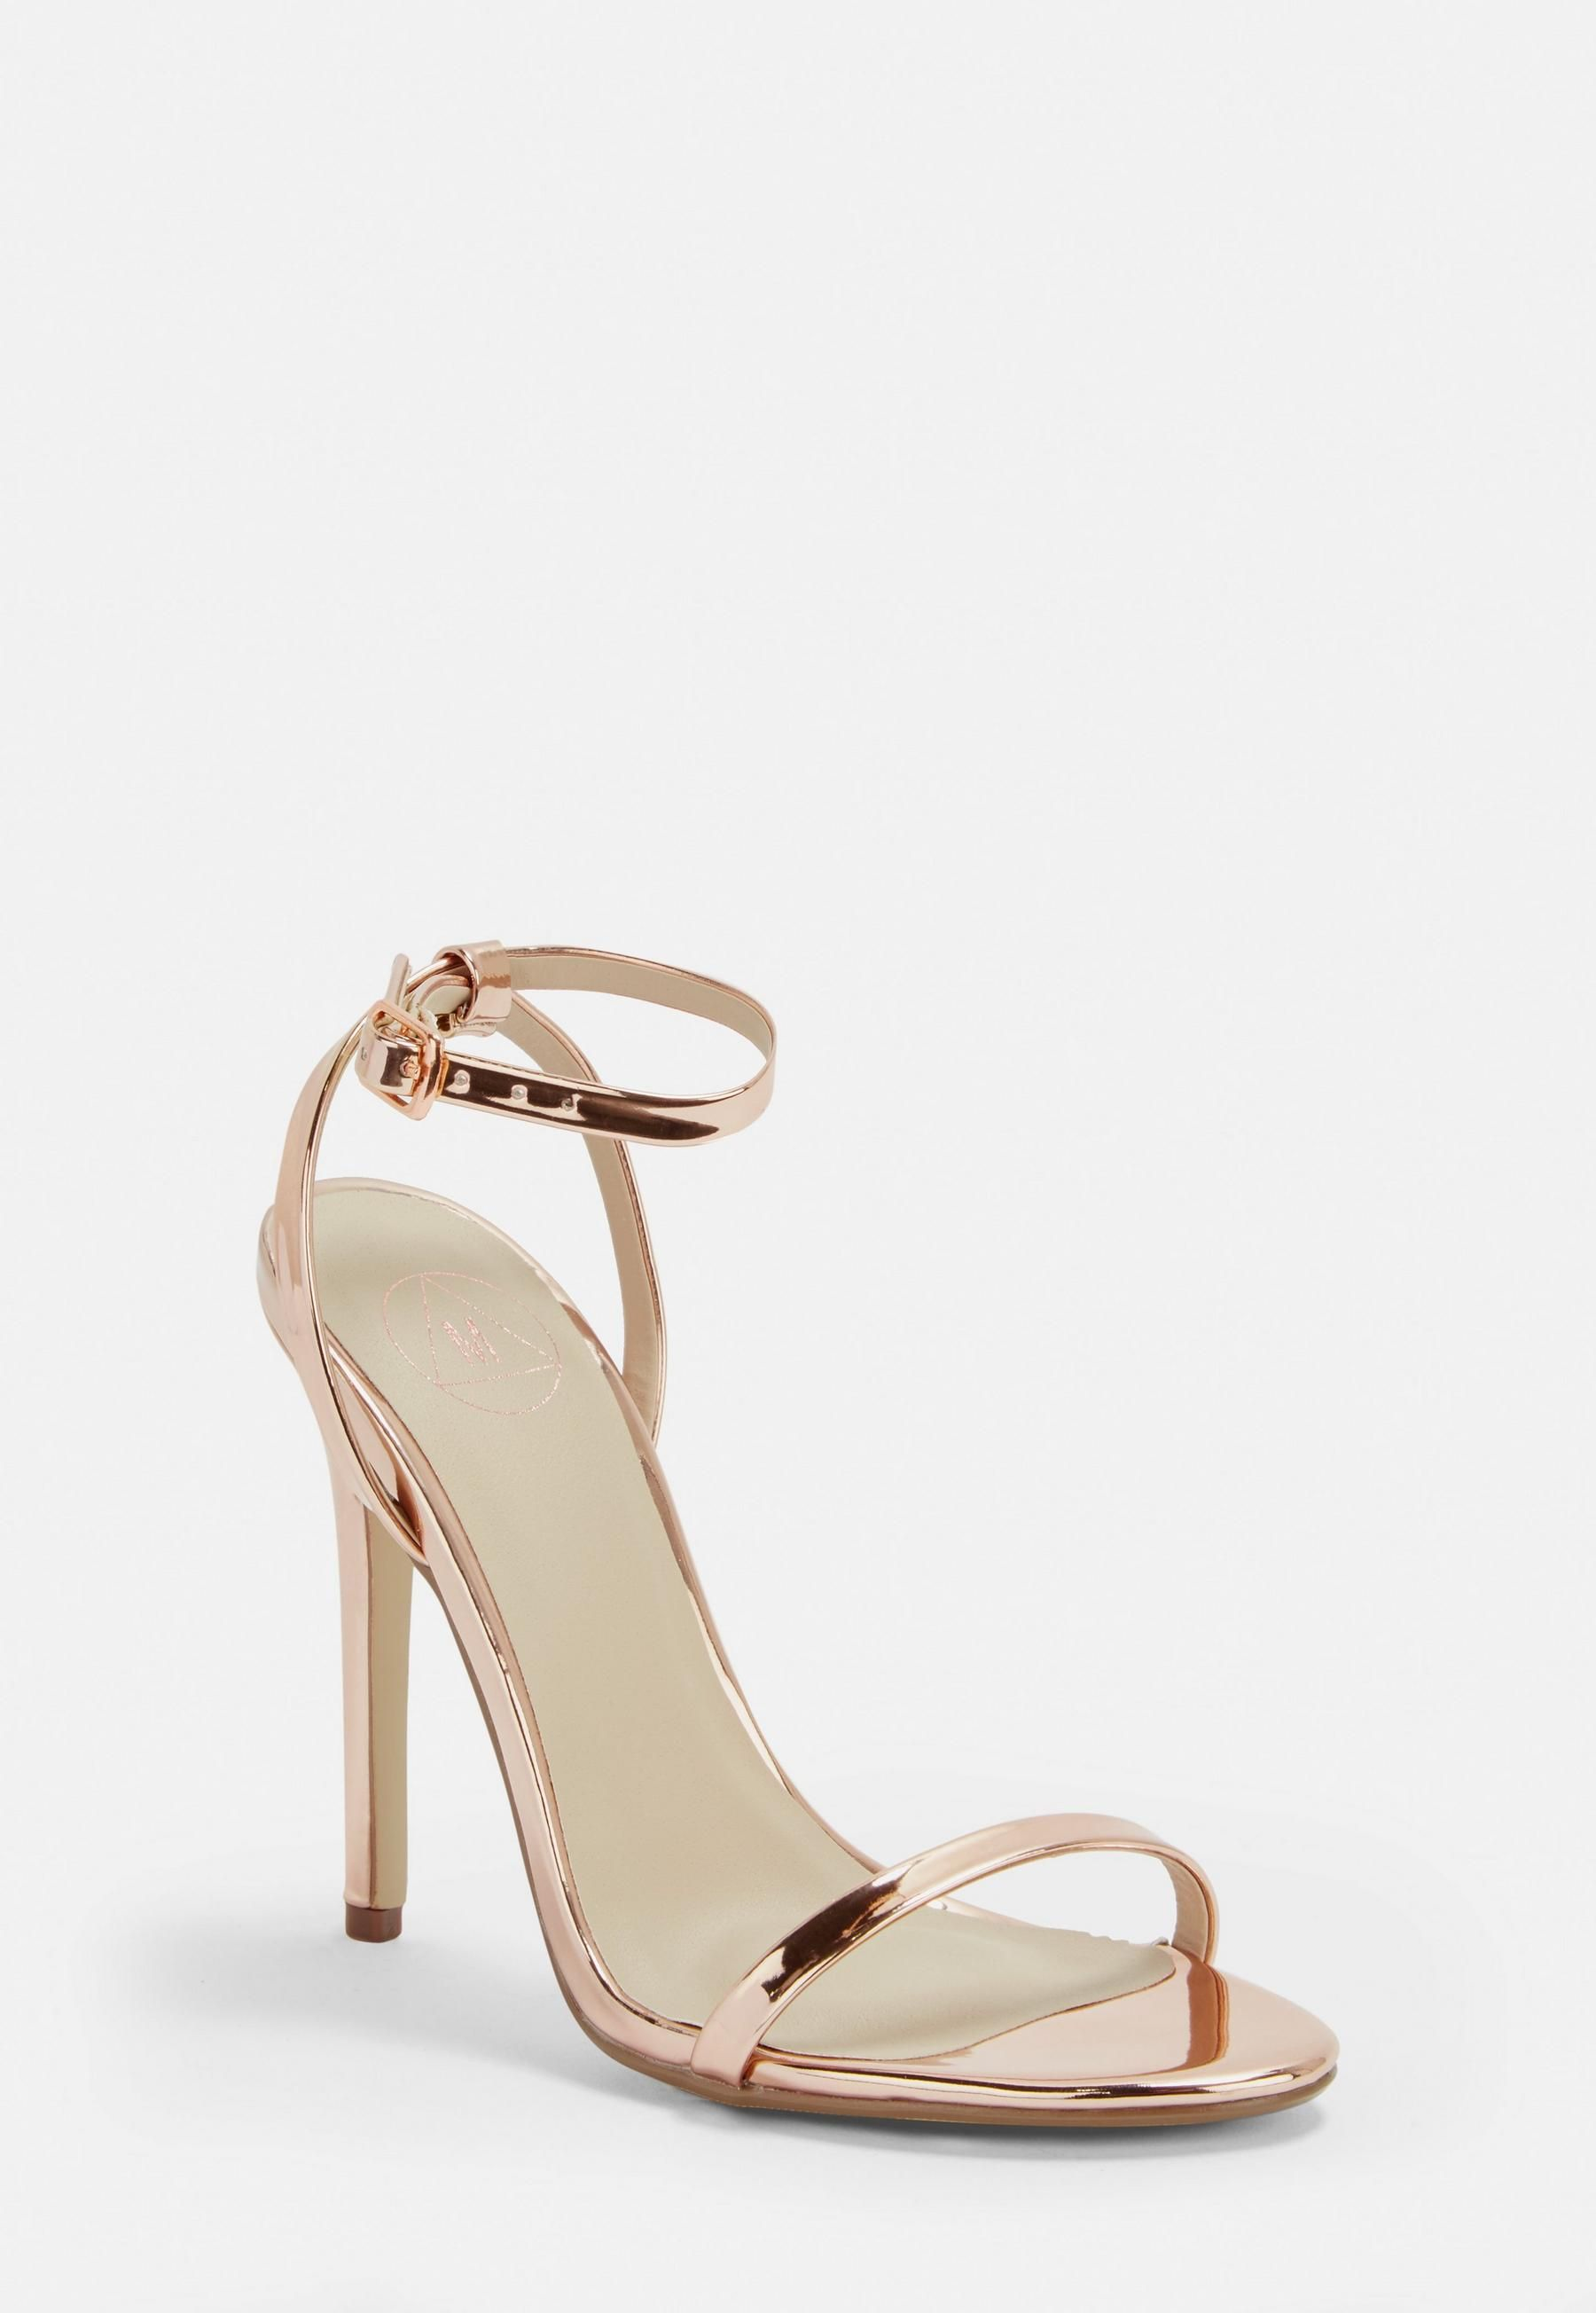 cb911493c3 Missguided Rose Gold Basic Barely There Heels in 2019 | Clothes and ...